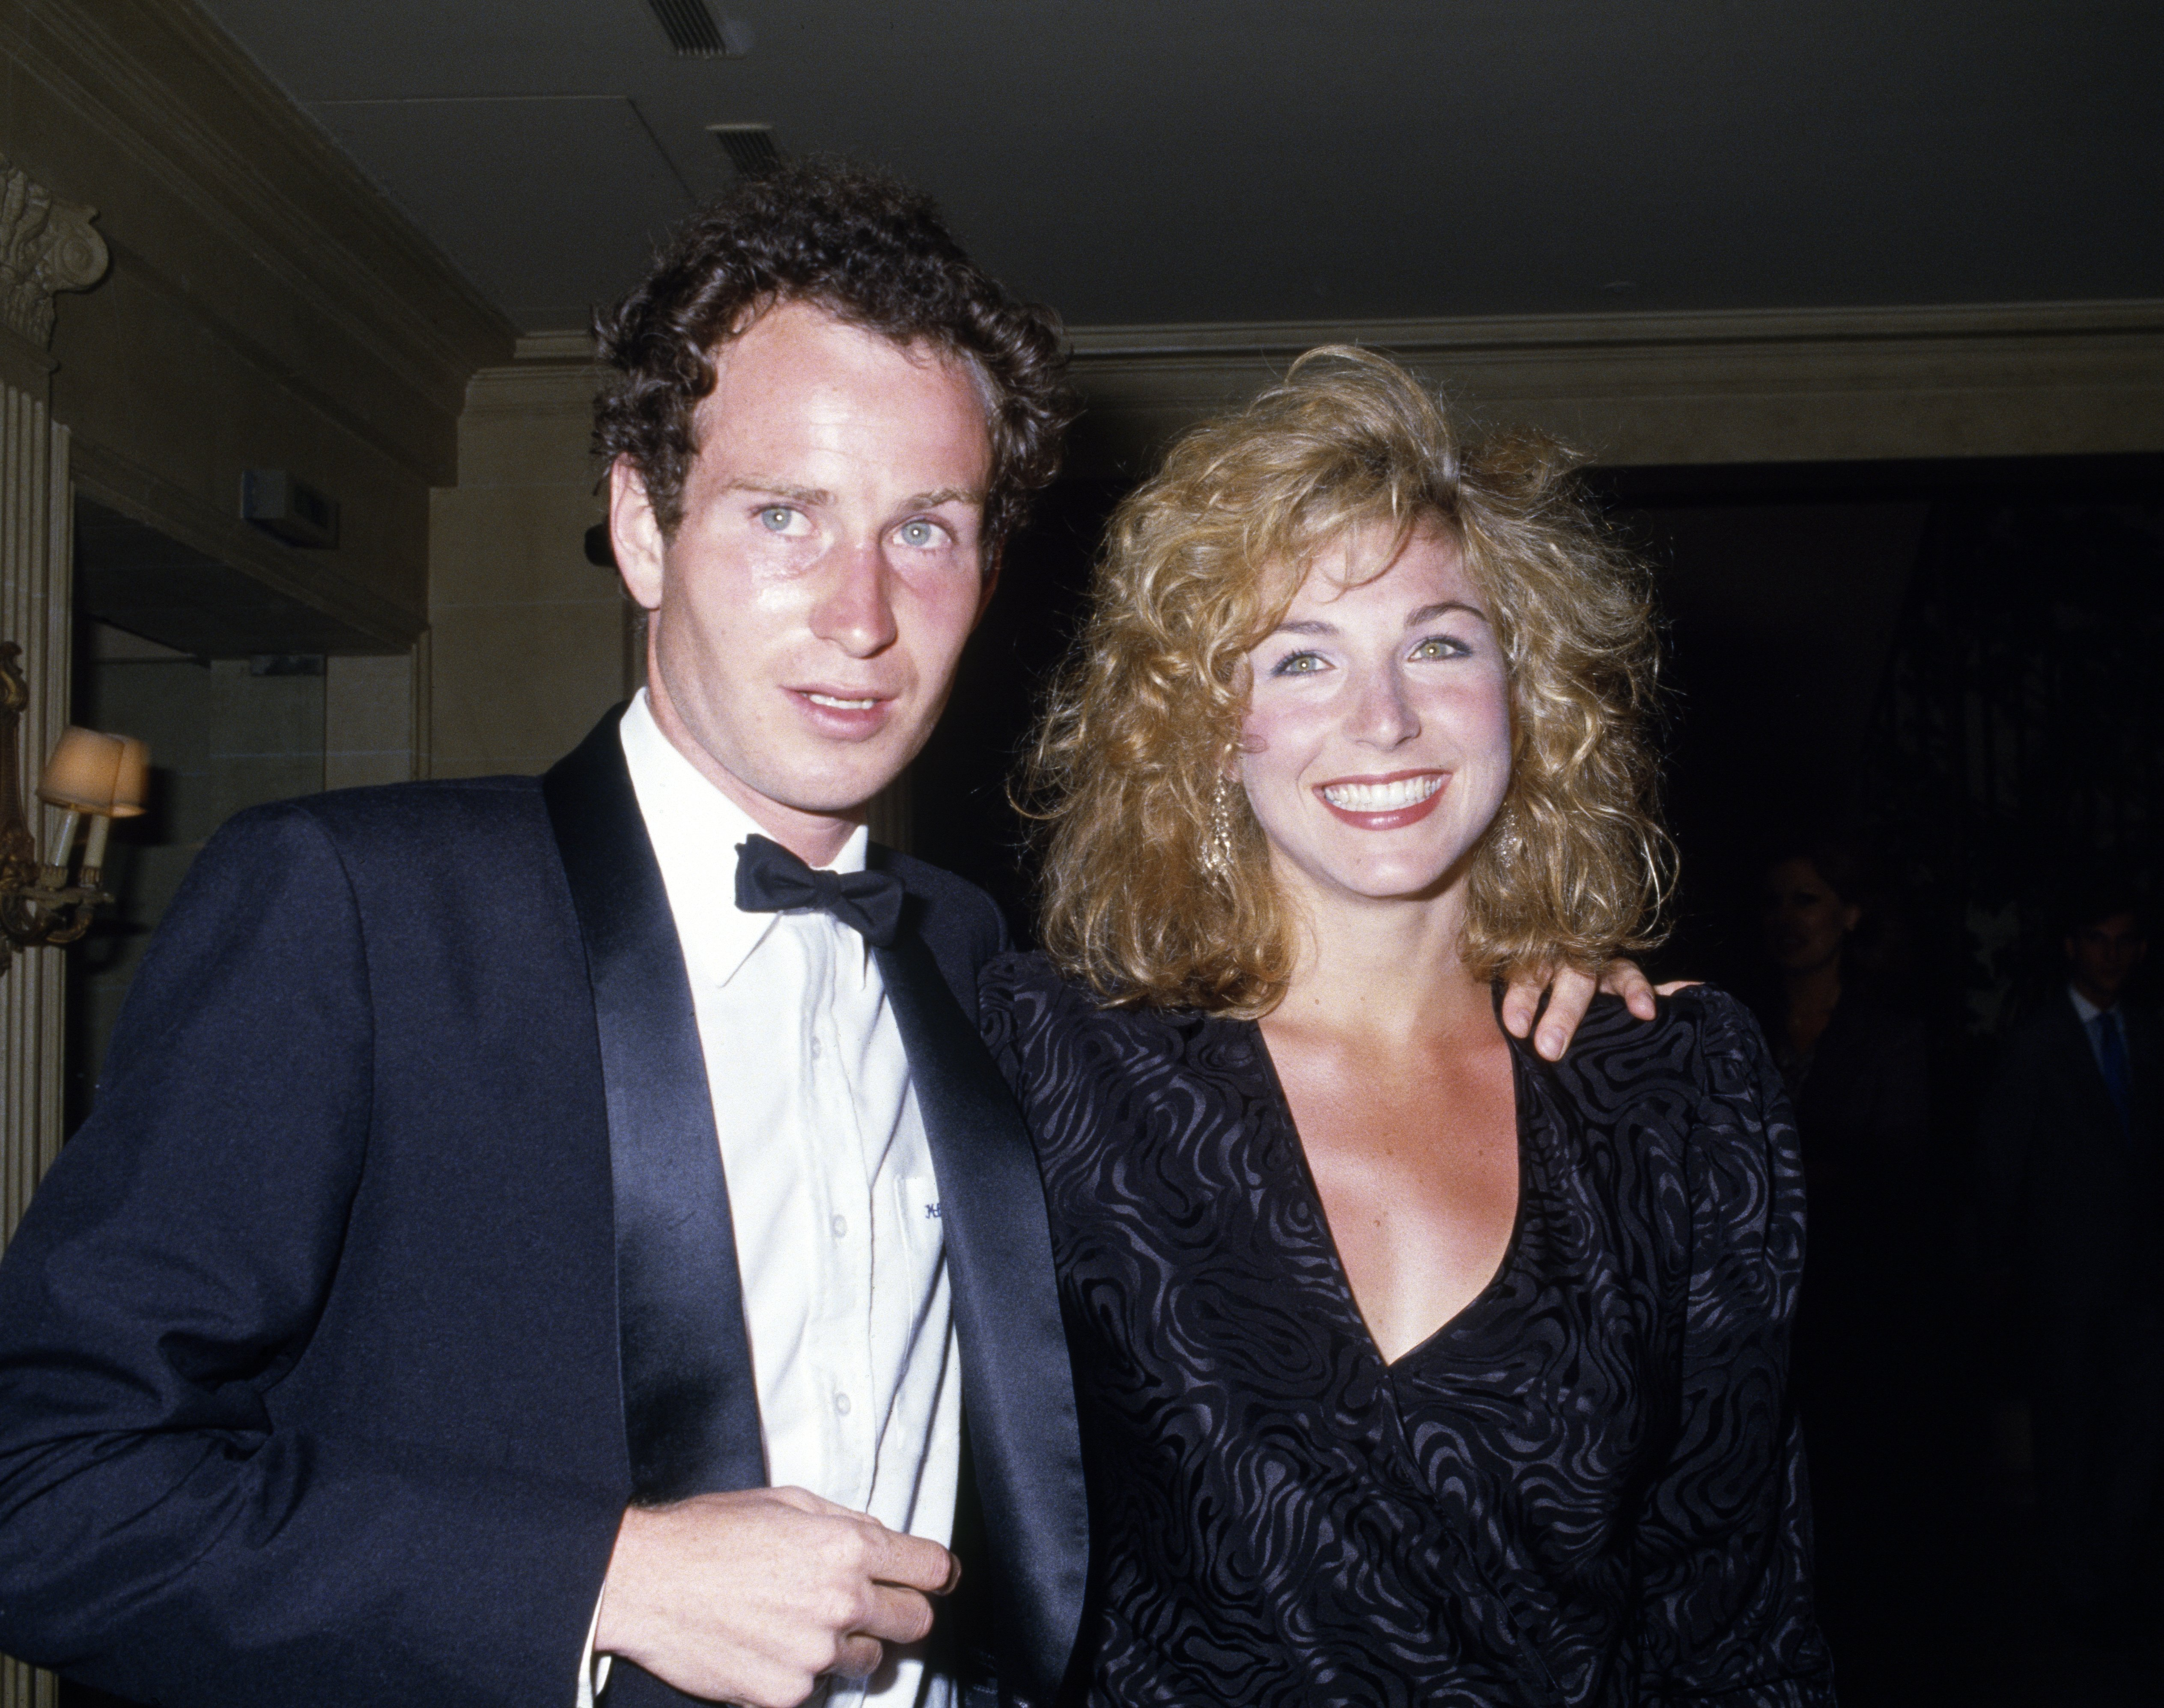 John McEnroe and Tatum O'Neal at the Players' Evening event during the French Open Tennis Championships on May 4, 1985 in Paris, France | Photo: GettyImages